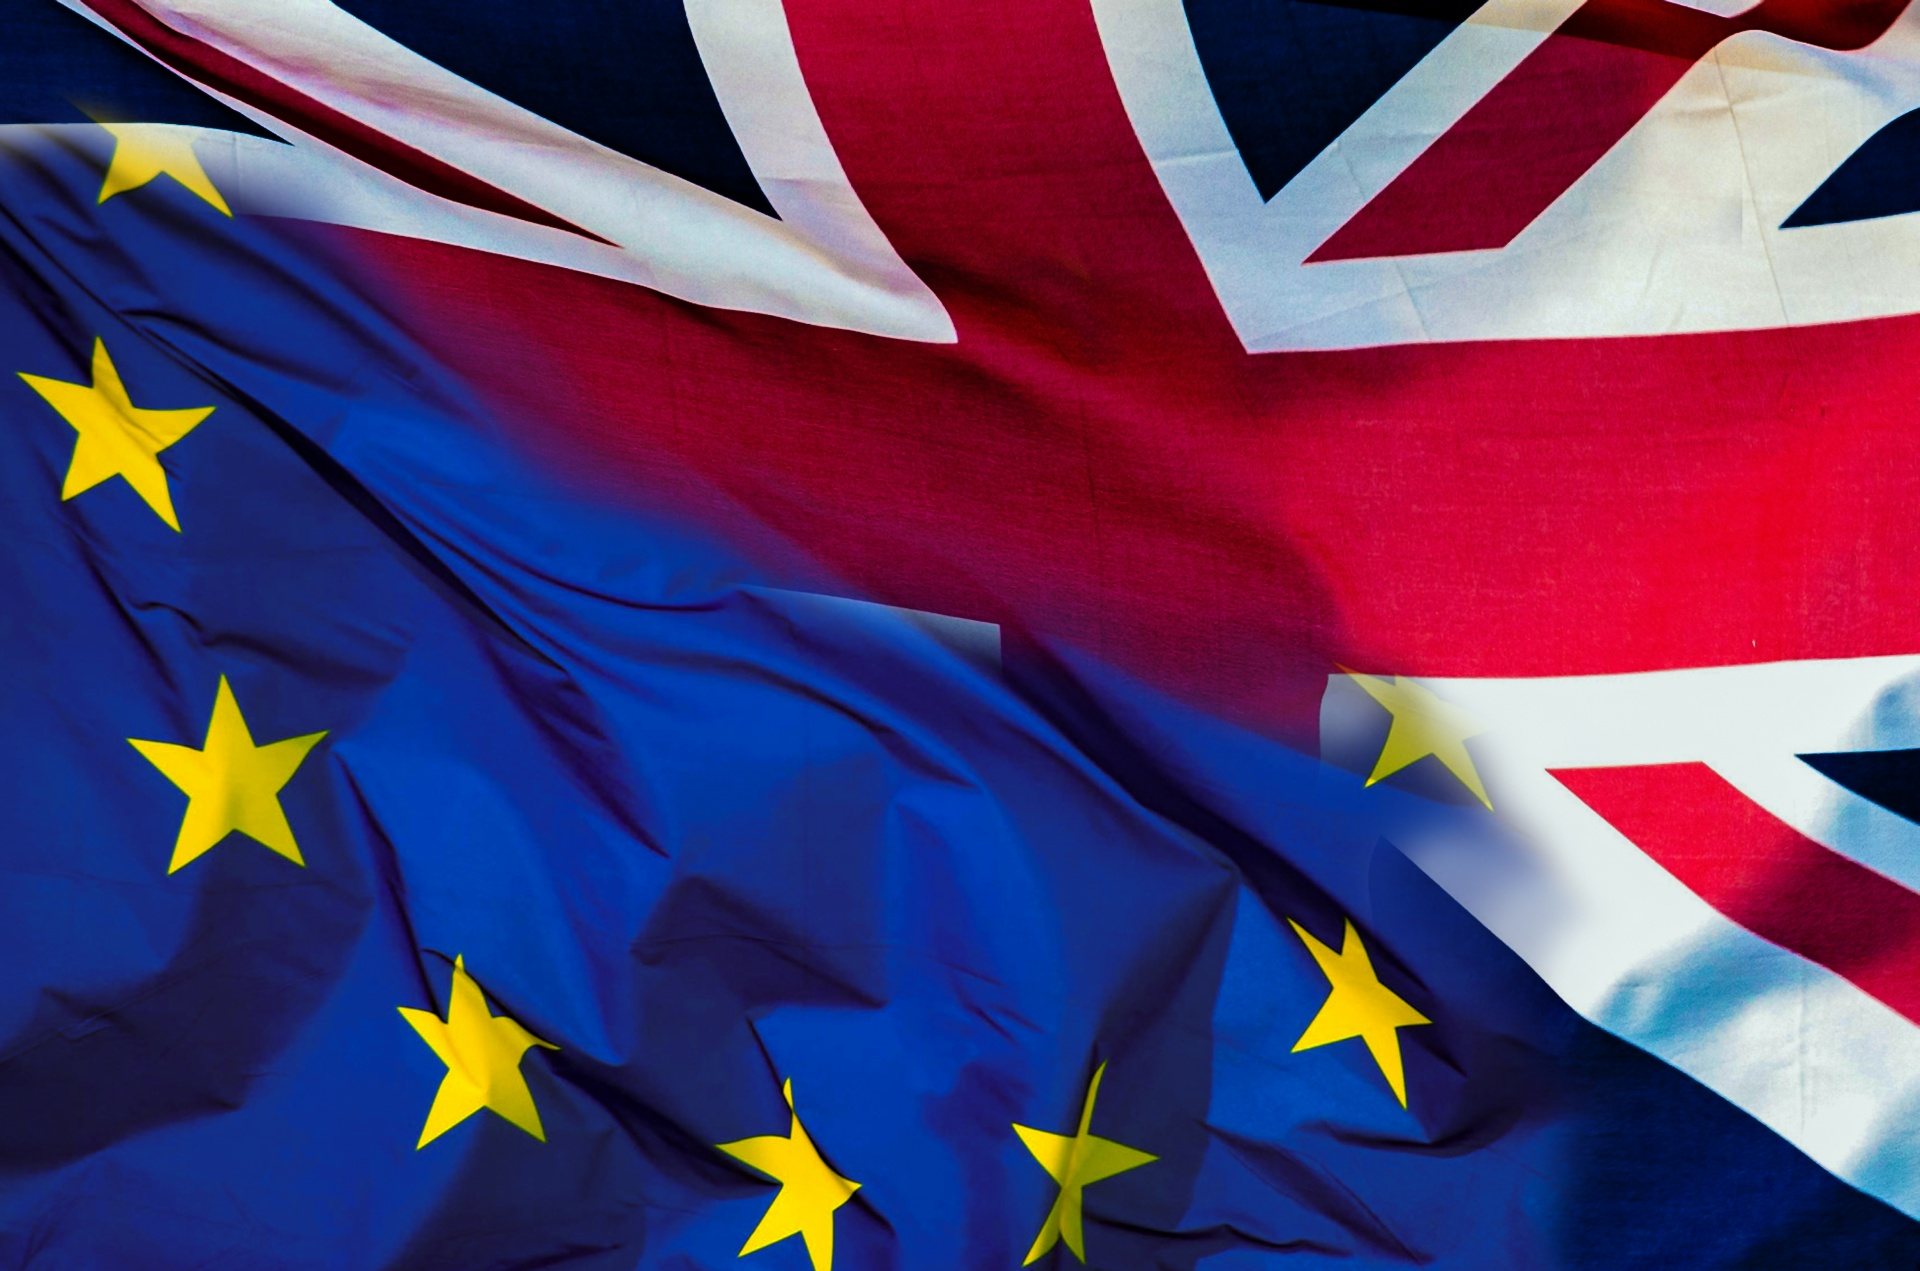 Brexit – what next for the investment dealmakers evaluating business and market attractiveness?